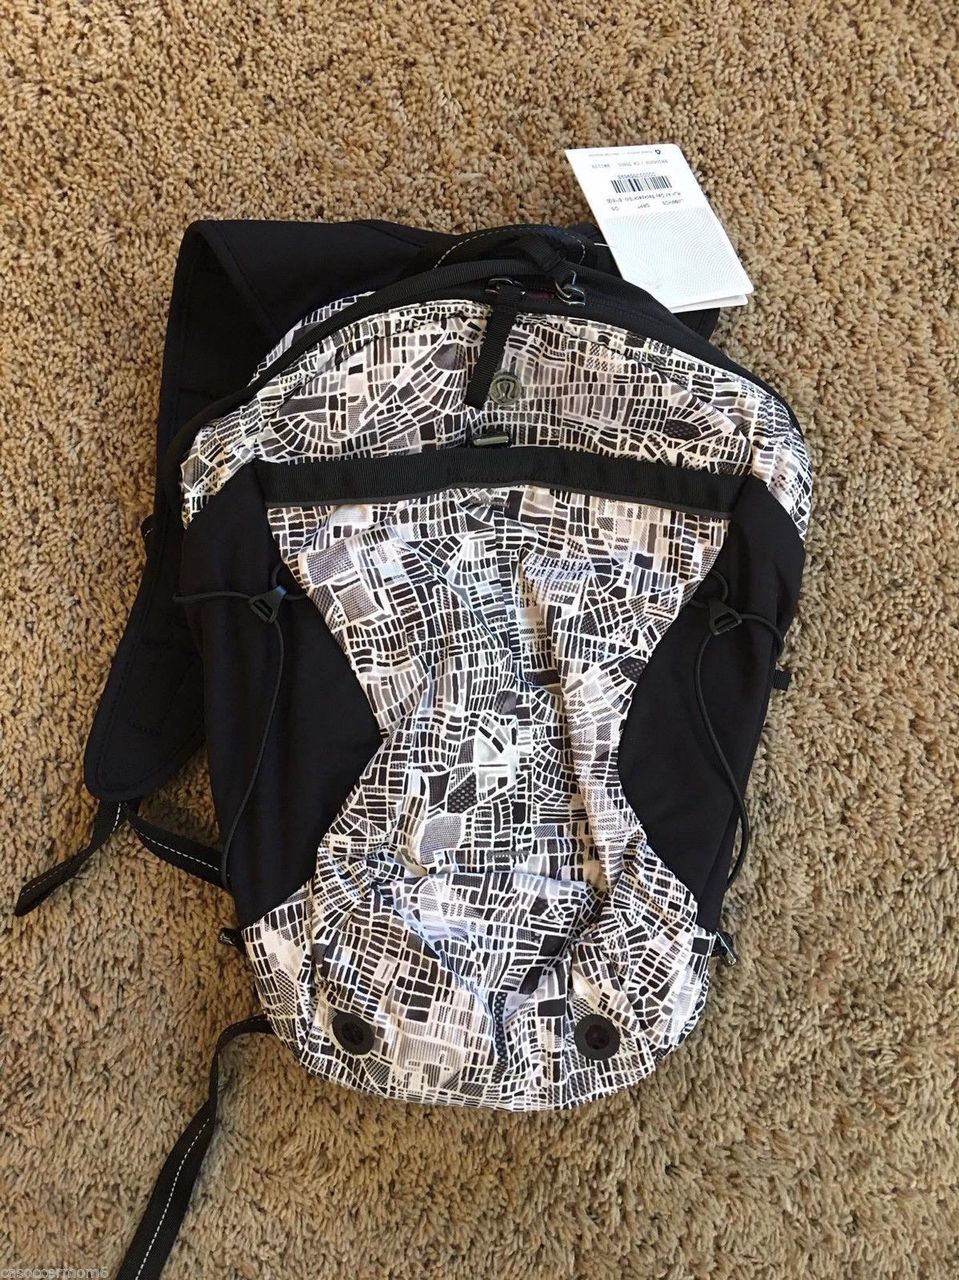 ce33840c7b Lululemon Run All Day Backpack - 2016 Seawheeze - Grid Map Texture White  Black - lulu fanatics